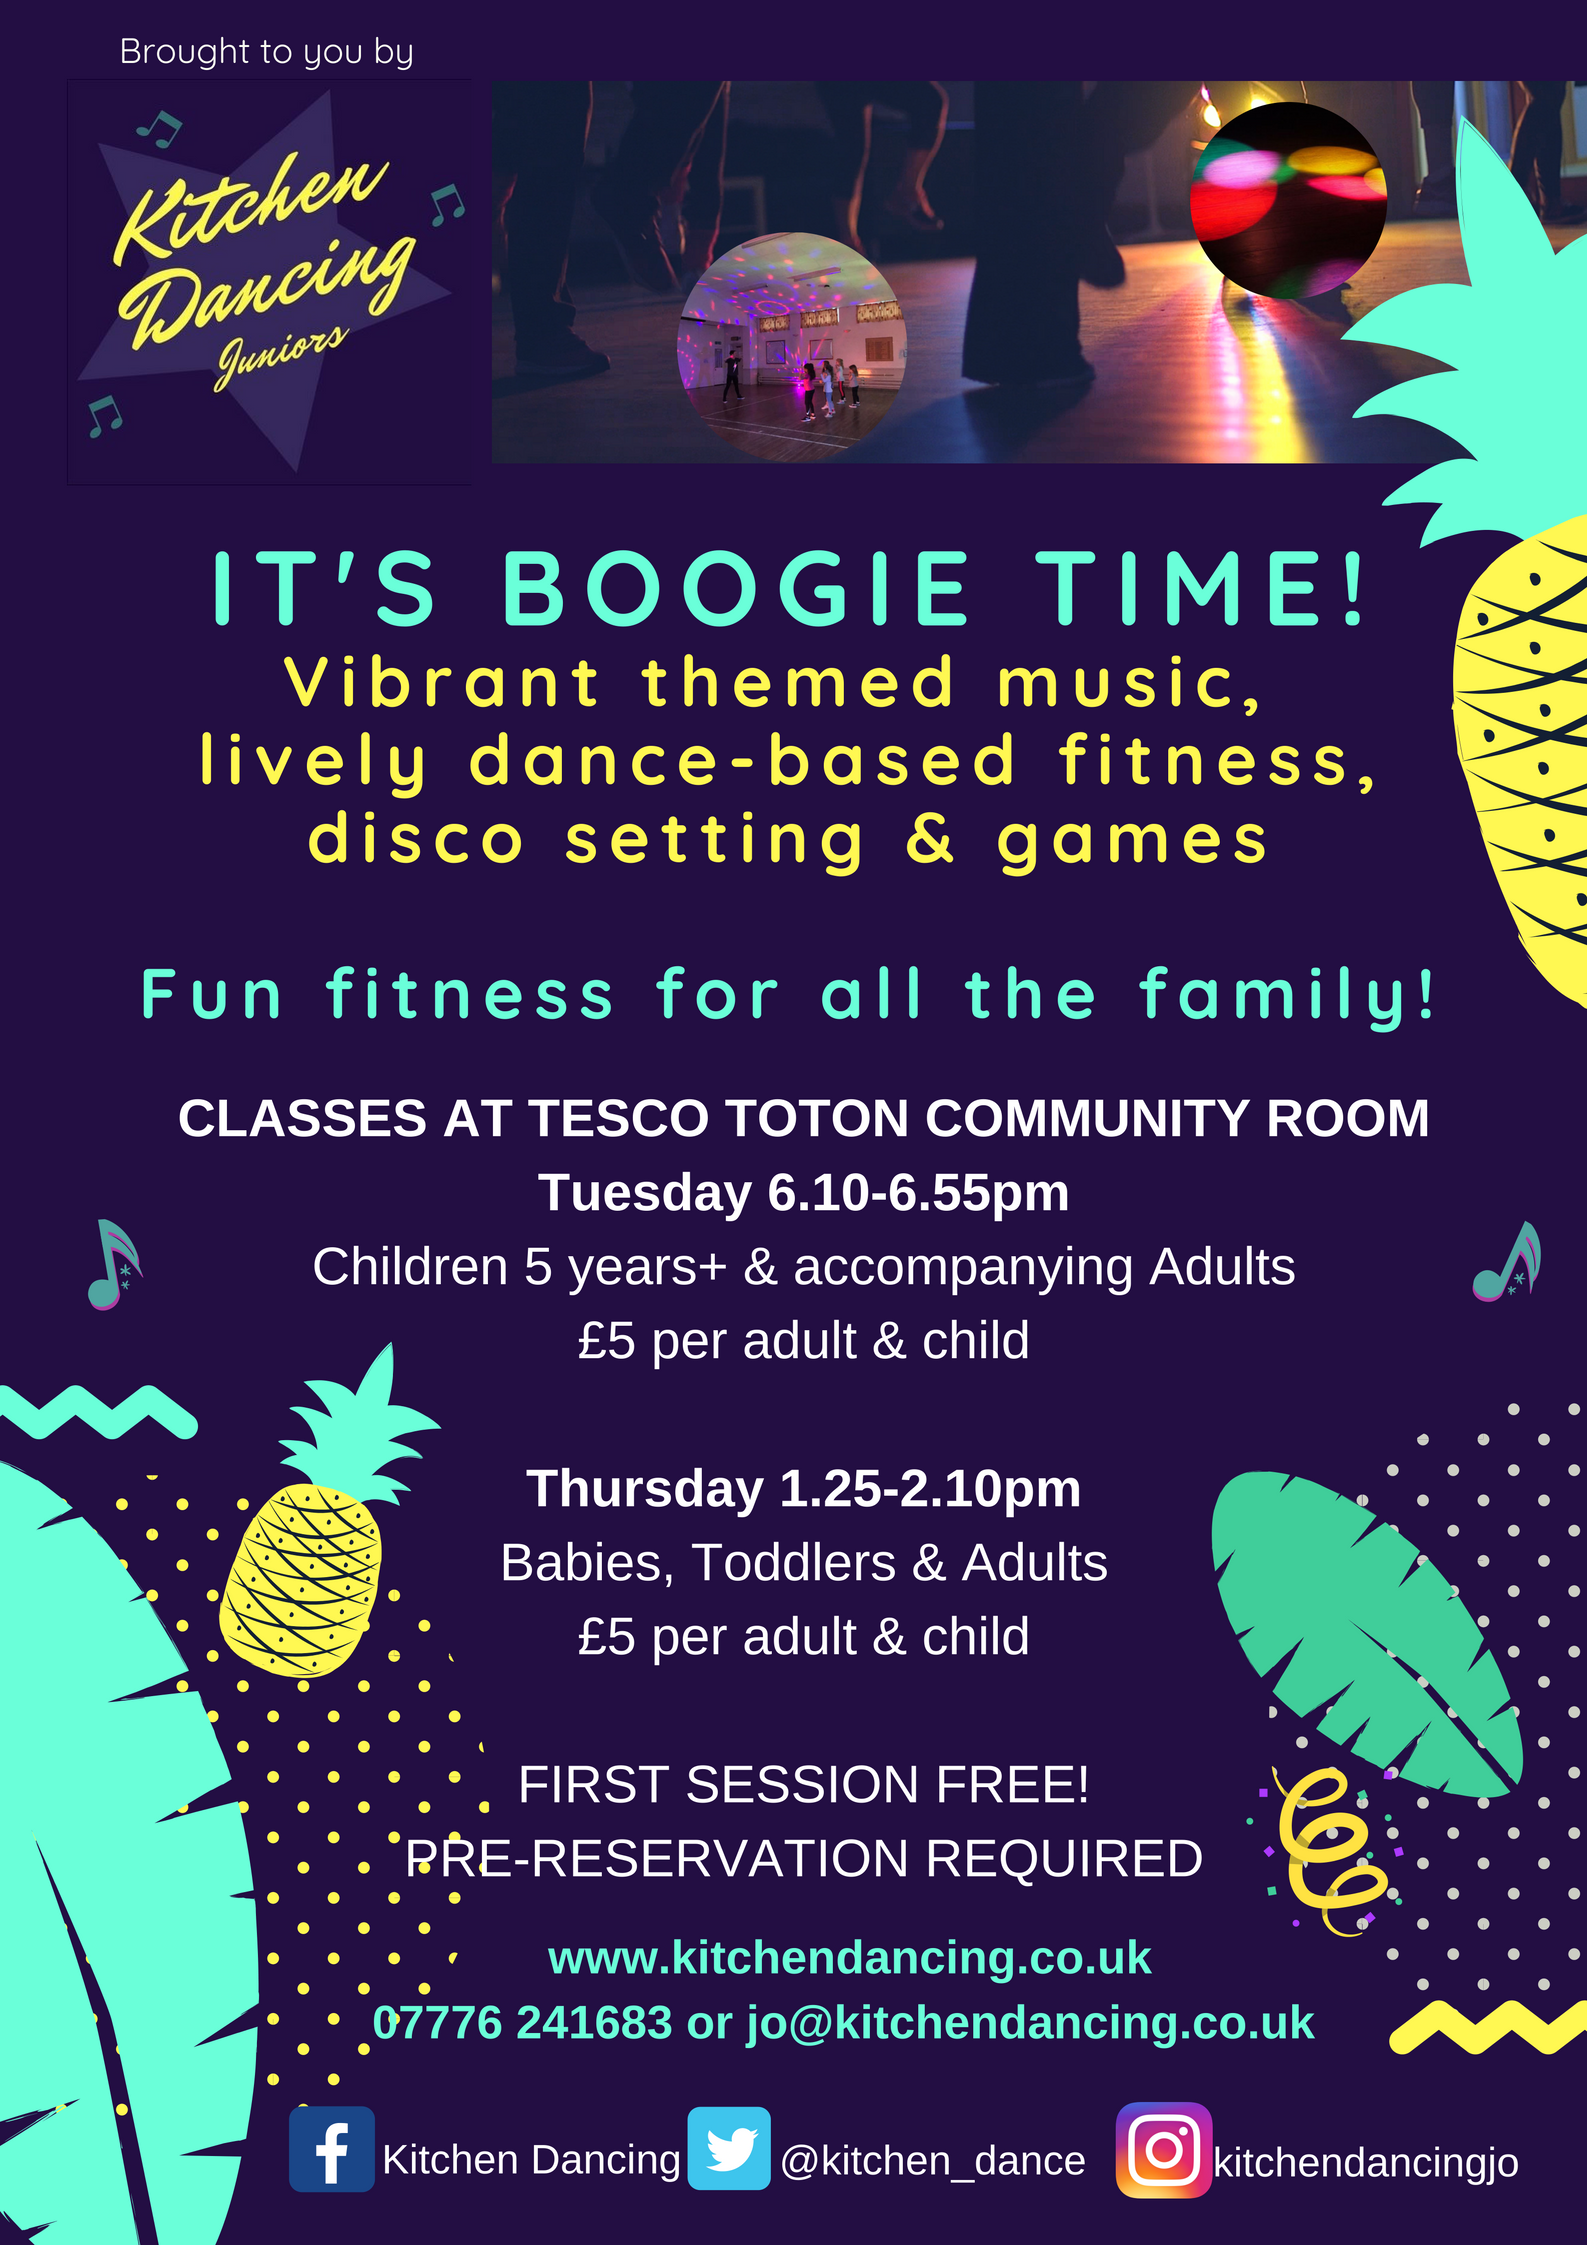 Family Boogie session (Adults & children 0-4 yrs) event.